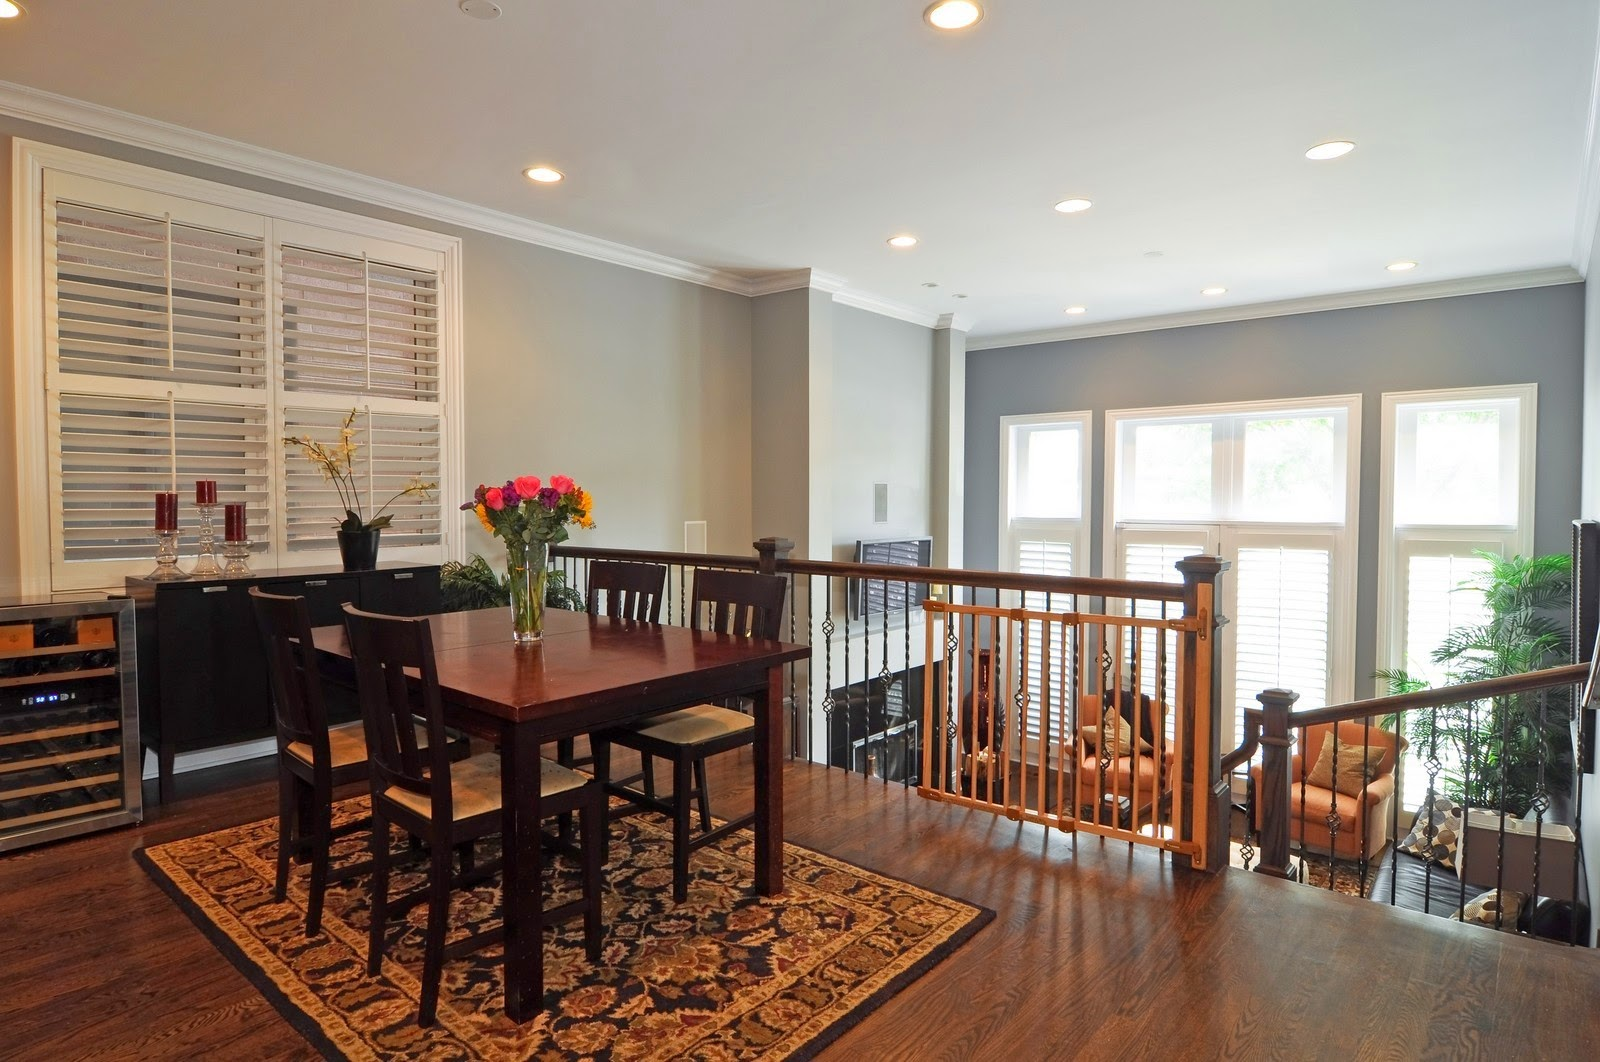 The best gray paint colors updated often home with keki for Best dining room paint colors 2015